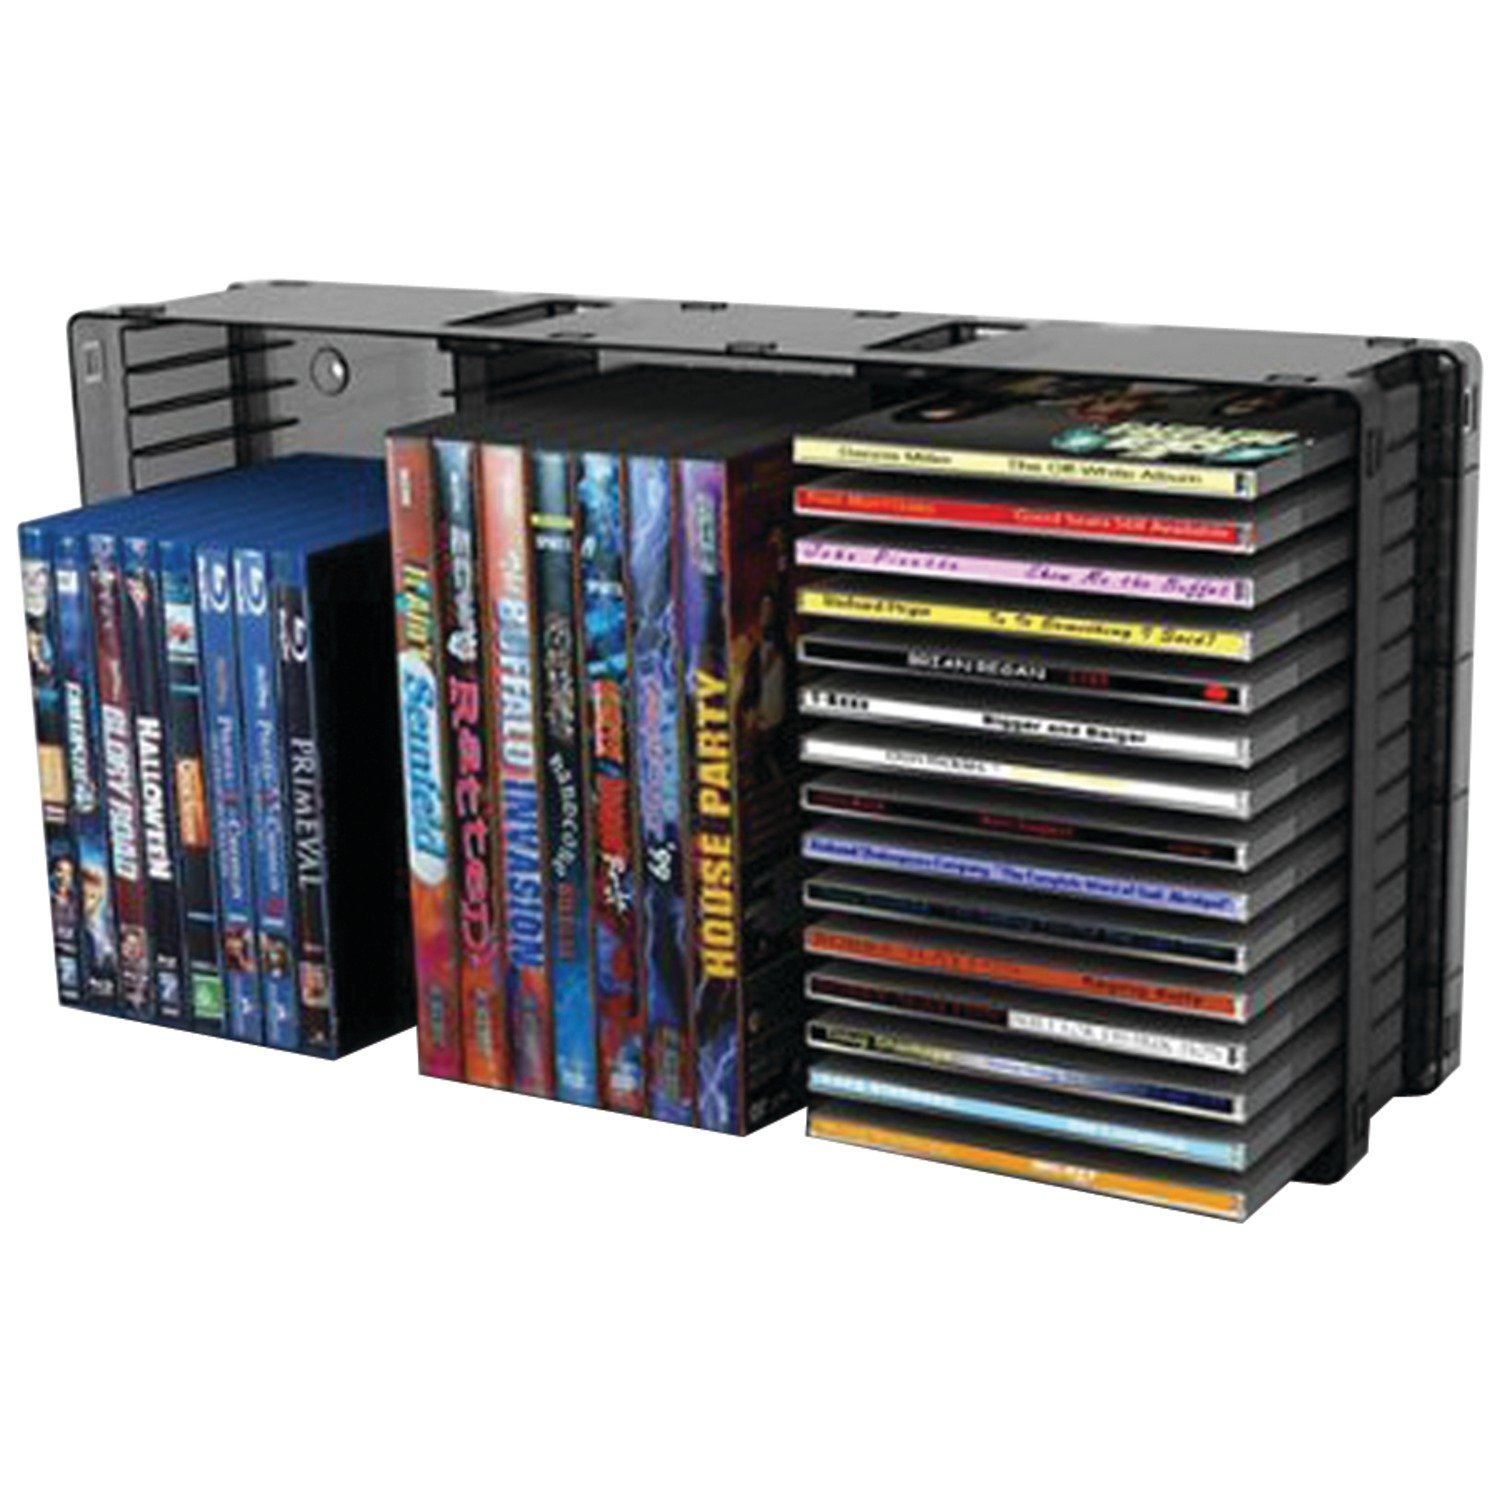 Amazon.com Atlantic 36635731 Domino Disc Storage Module 45 CD/21 DVD Black Home Audio u0026 Theater  sc 1 st  Amazon.com & Amazon.com: Atlantic 36635731 Domino Disc Storage Module 45 CD/21 ...